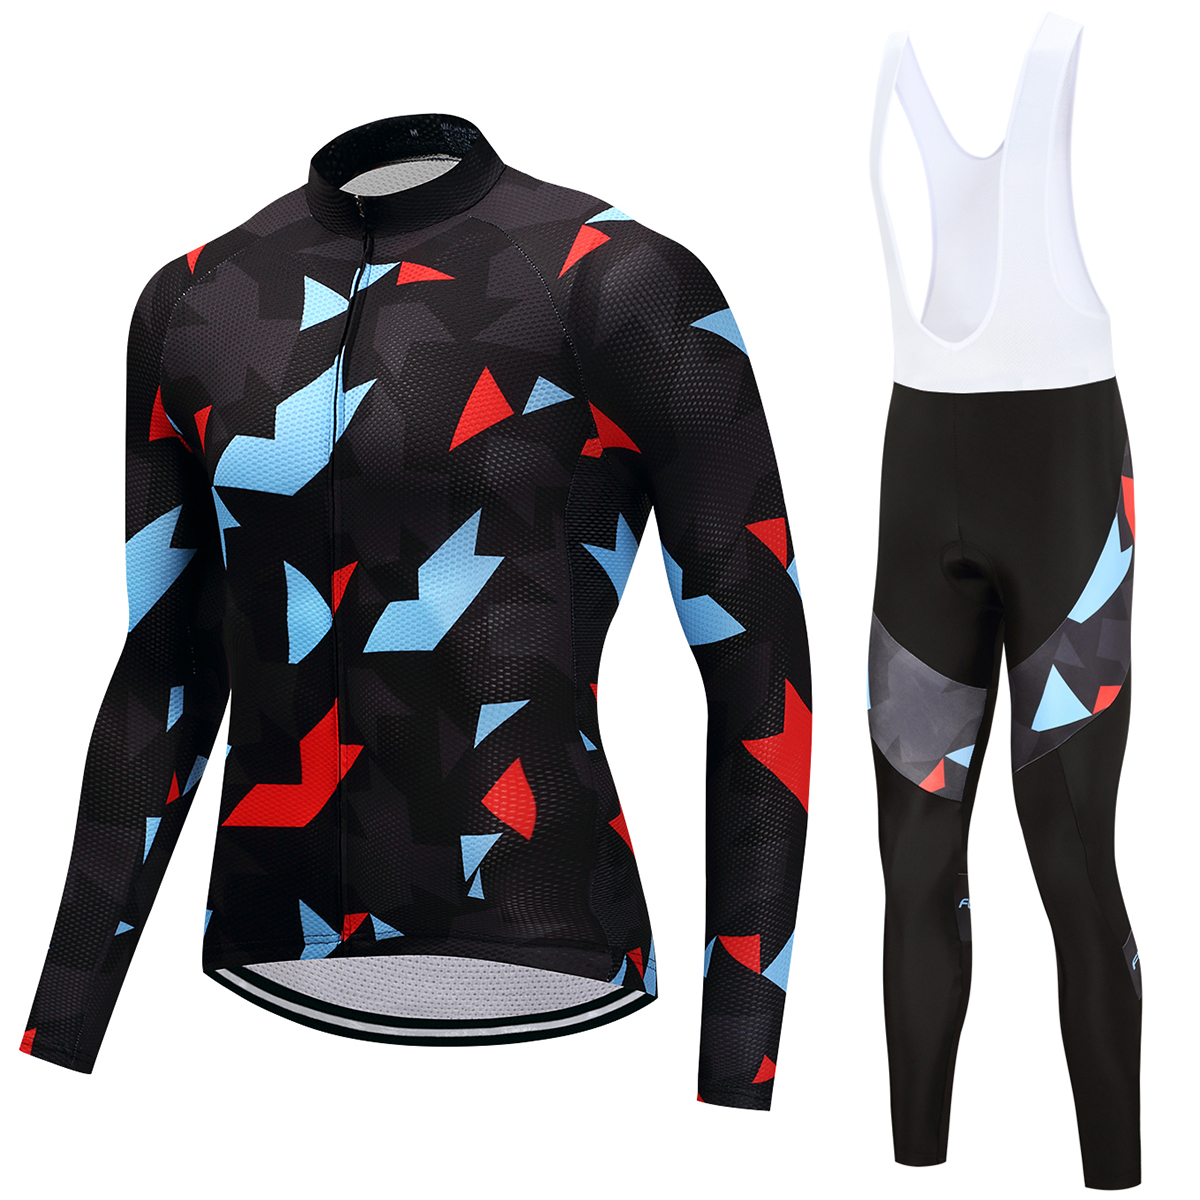 FUALRNY 2018 New Long Sleeve Cycling Jerseys Set Bicycle Suit Mountain Bike Quick Dry Breathable Riding Jersey Clothing Sets Man